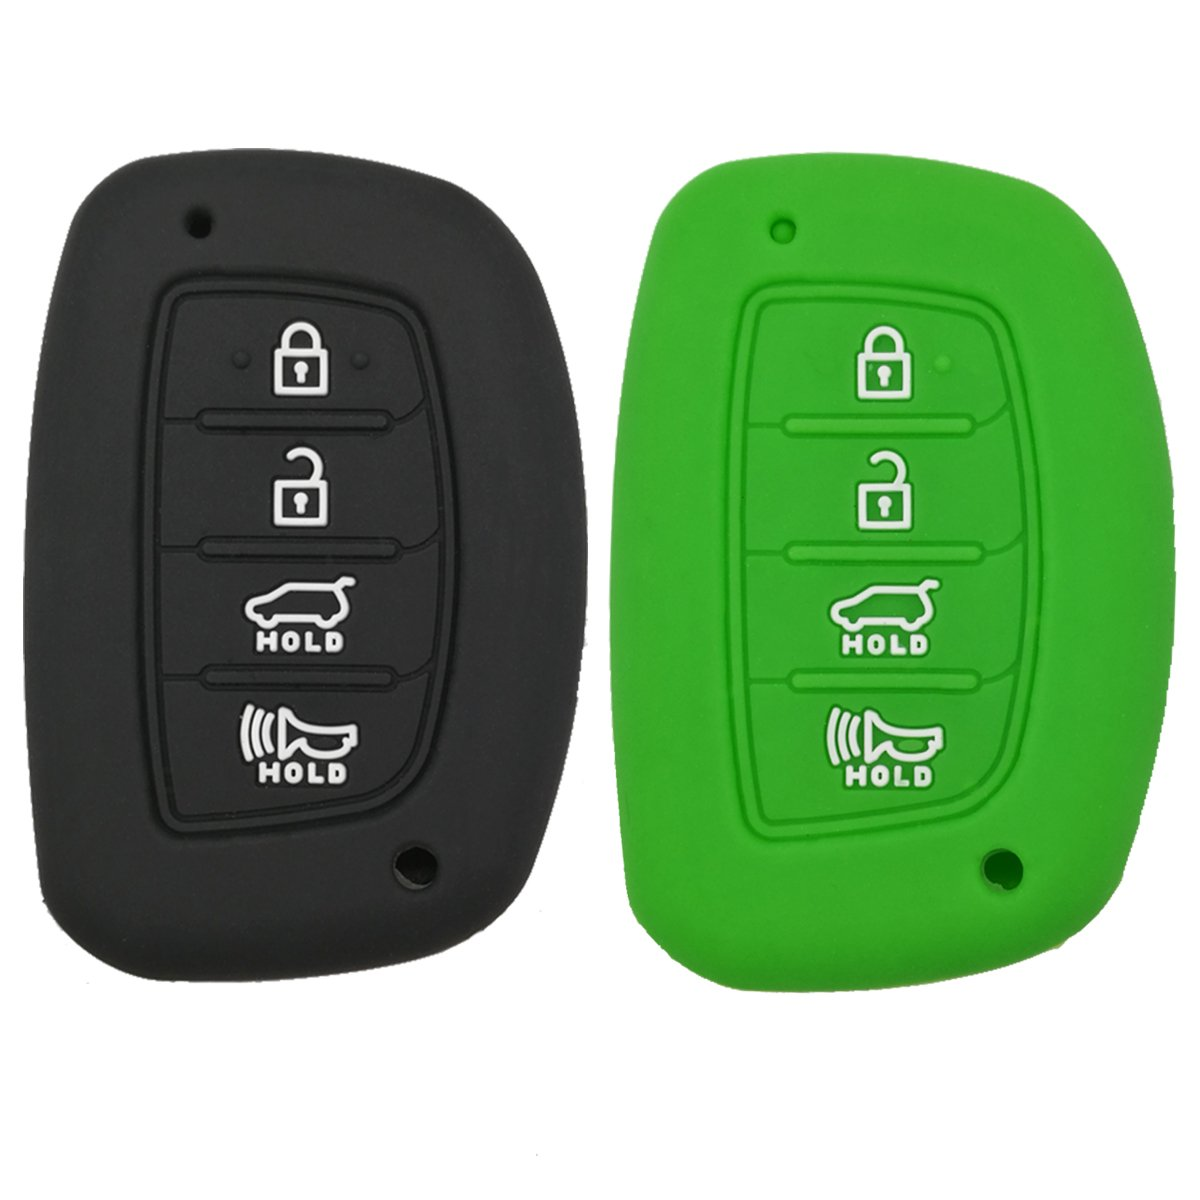 Coolbestda 2Pcs Silicone Key Fob Remote Case Protector Jacket for 2018 2017 2016 Hyundai Tucson Elantra Sonata 4Buttons Smart (NOT FIT Flip/Pop Out/Folding key) by Coolbestda